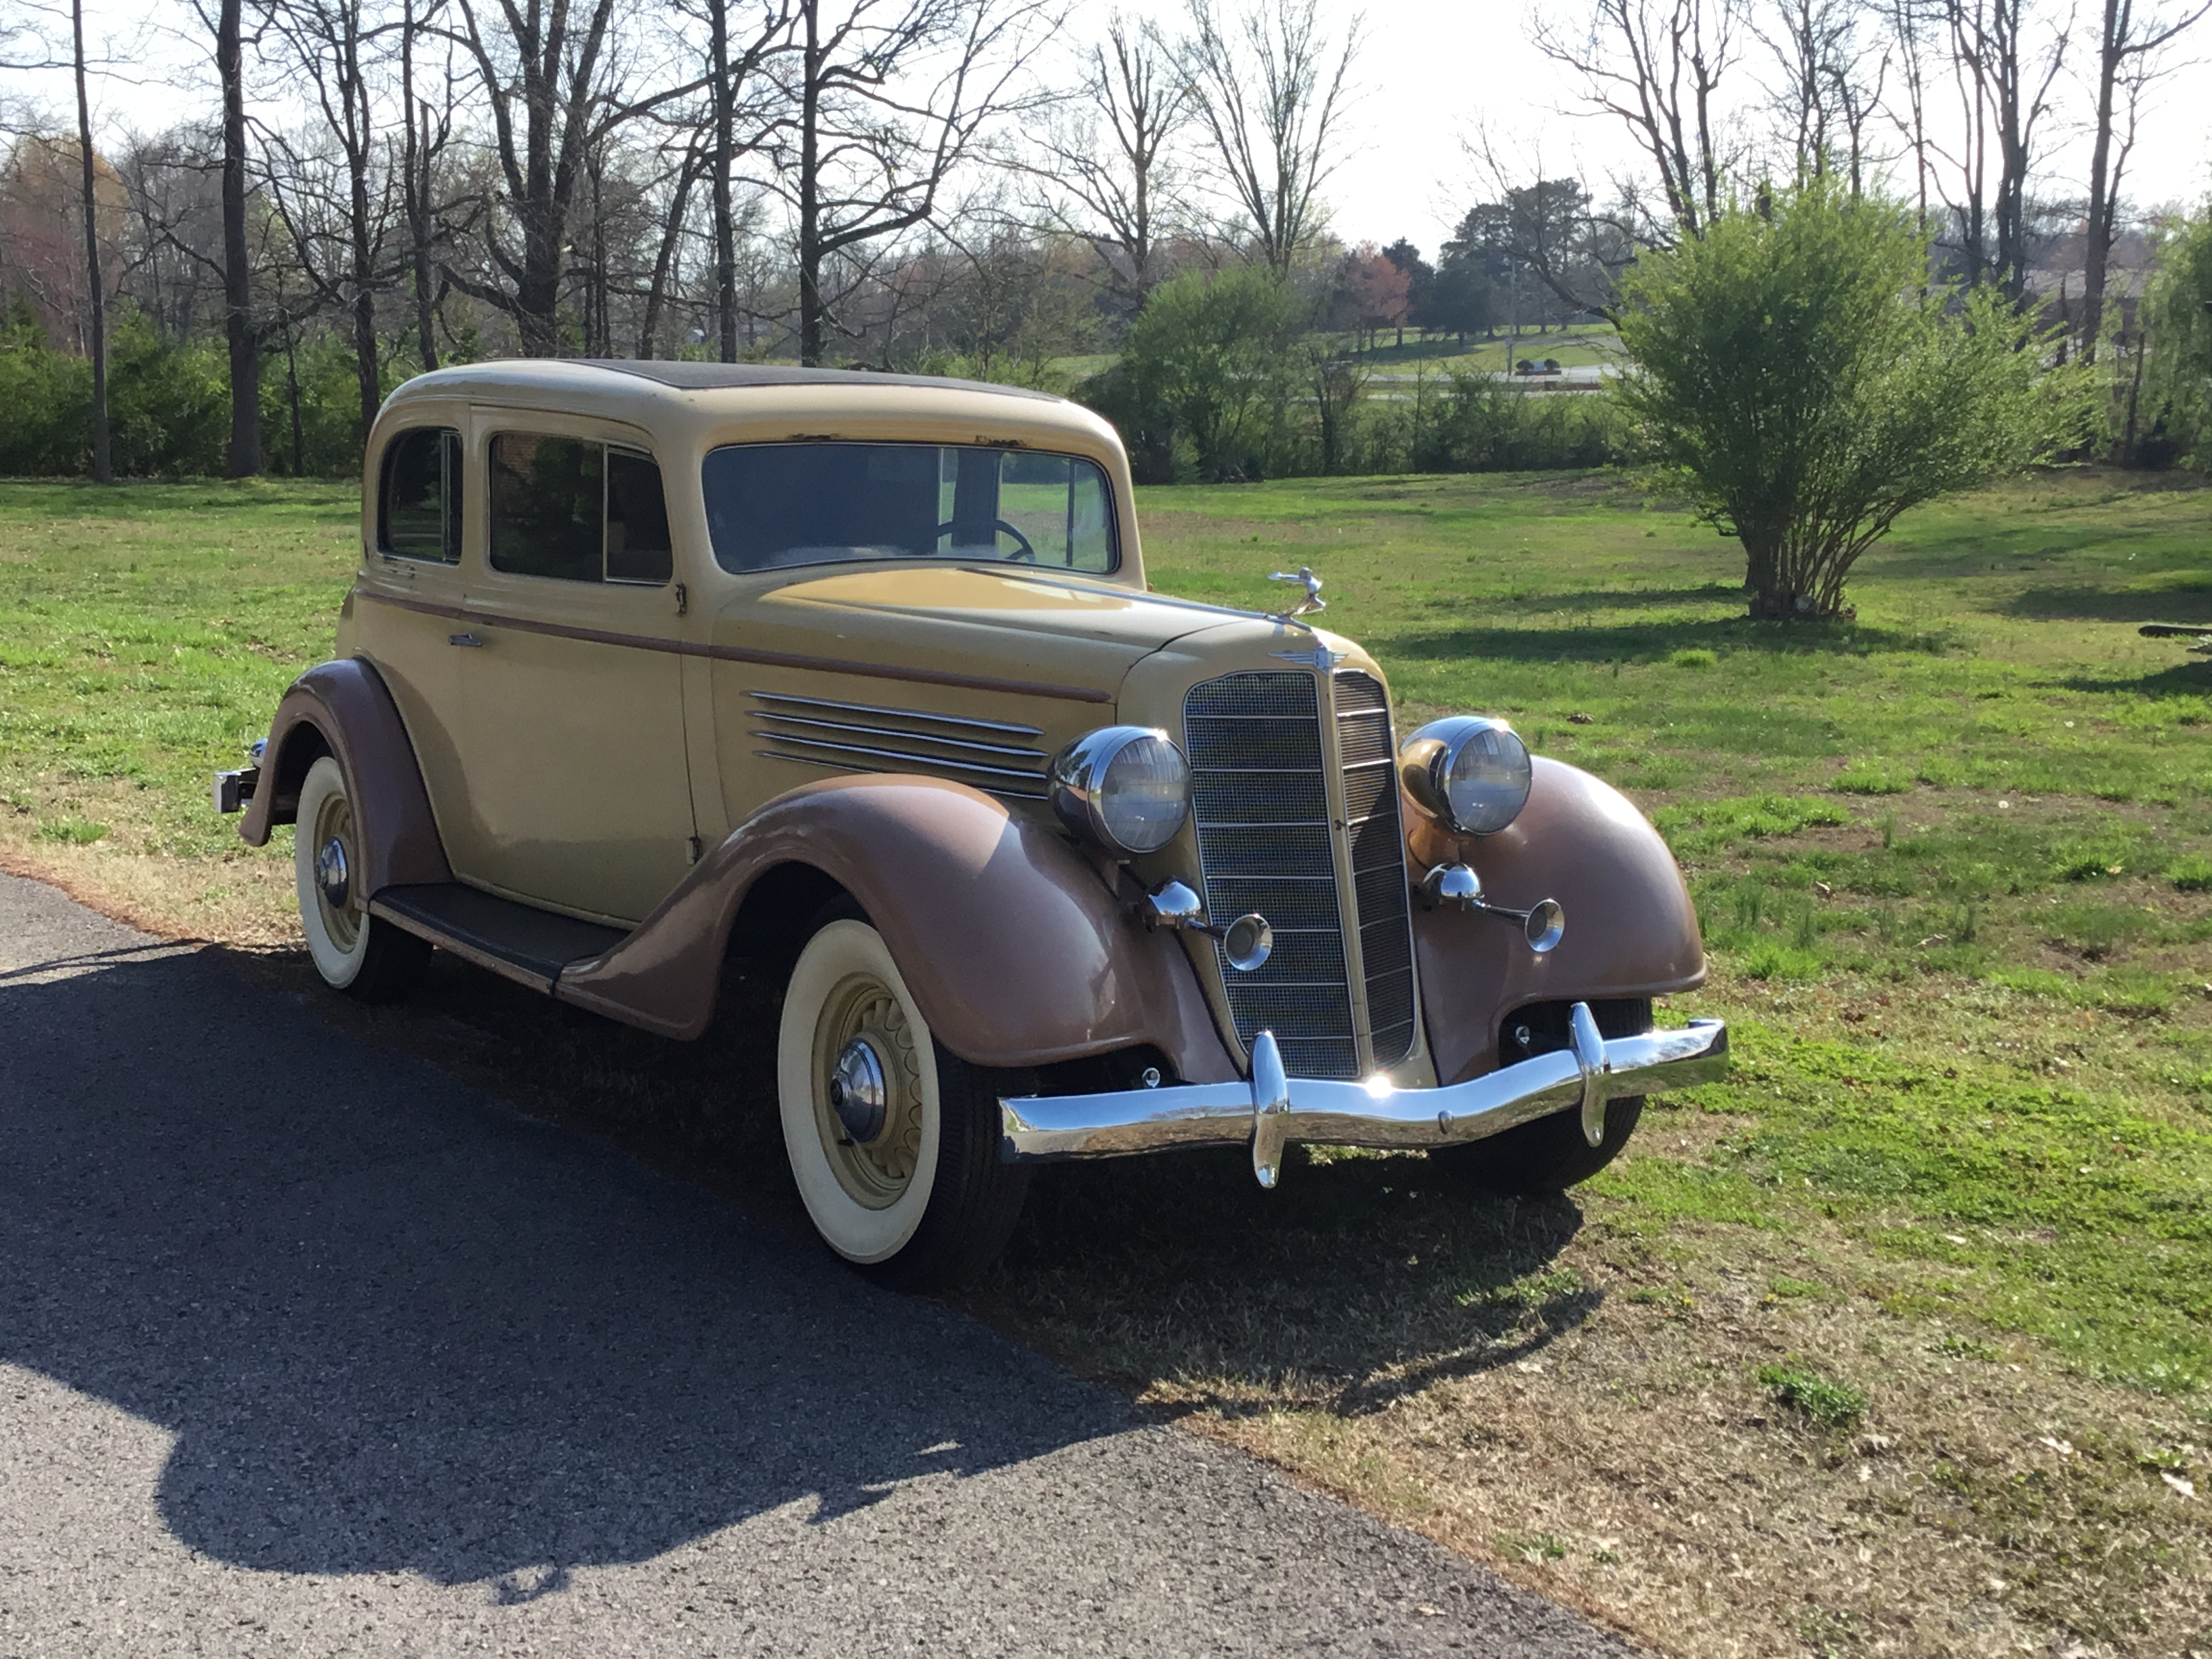 1935 Buick model 58 for sale - Buick - Buy/Sell - Antique Automobile ...